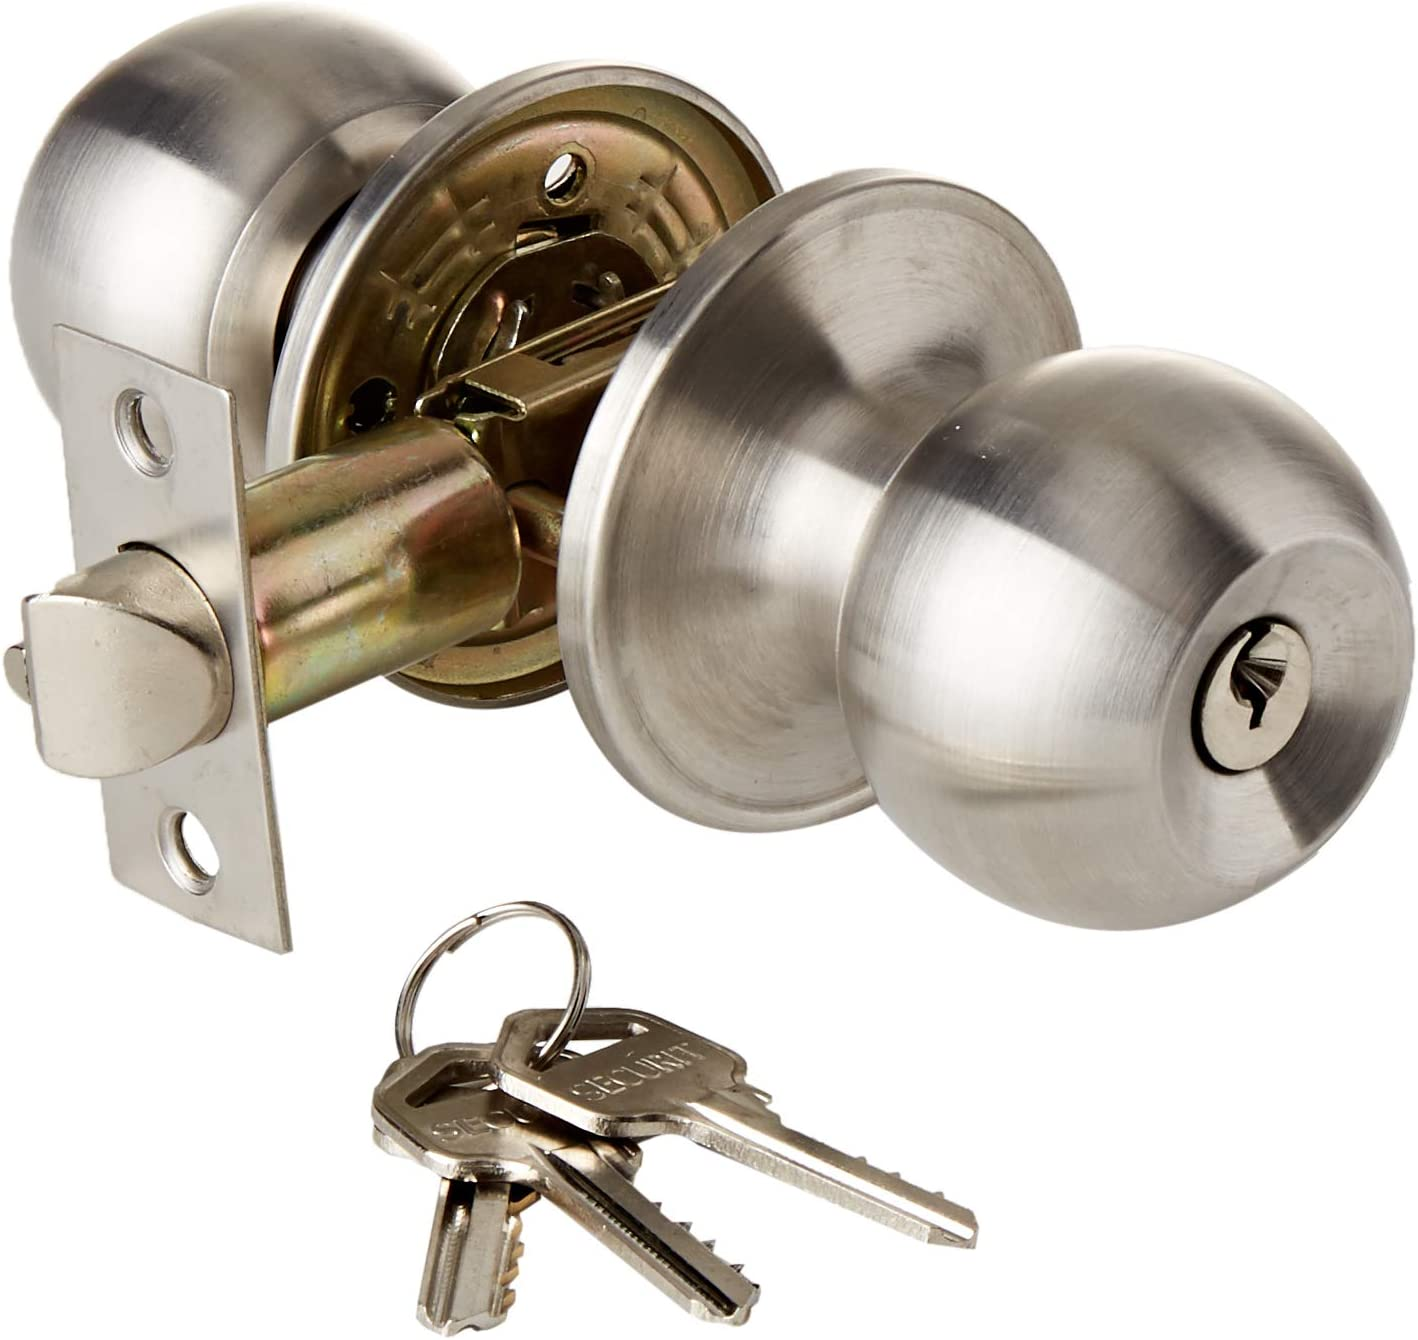 3 SETS of TOP QUALITY PASSAGE MORTICE DOOR KNOB SETS in SATIN STAINLESS STEEL